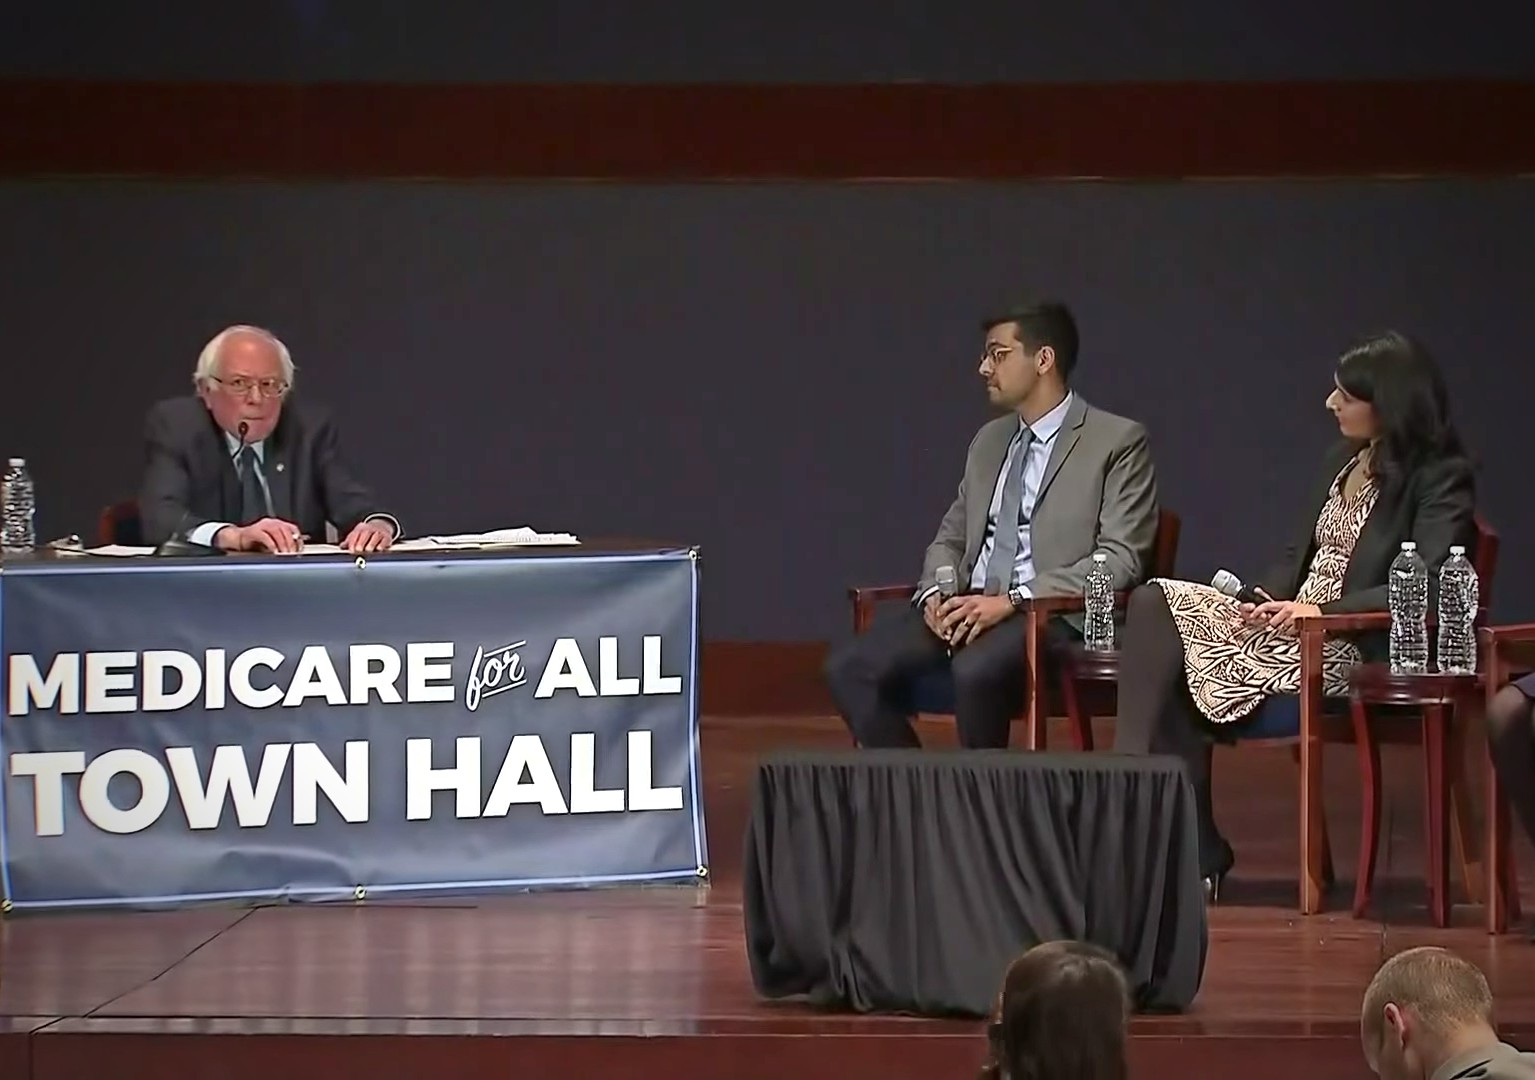 A panel discussion at the Medicare for All national town hall meeting